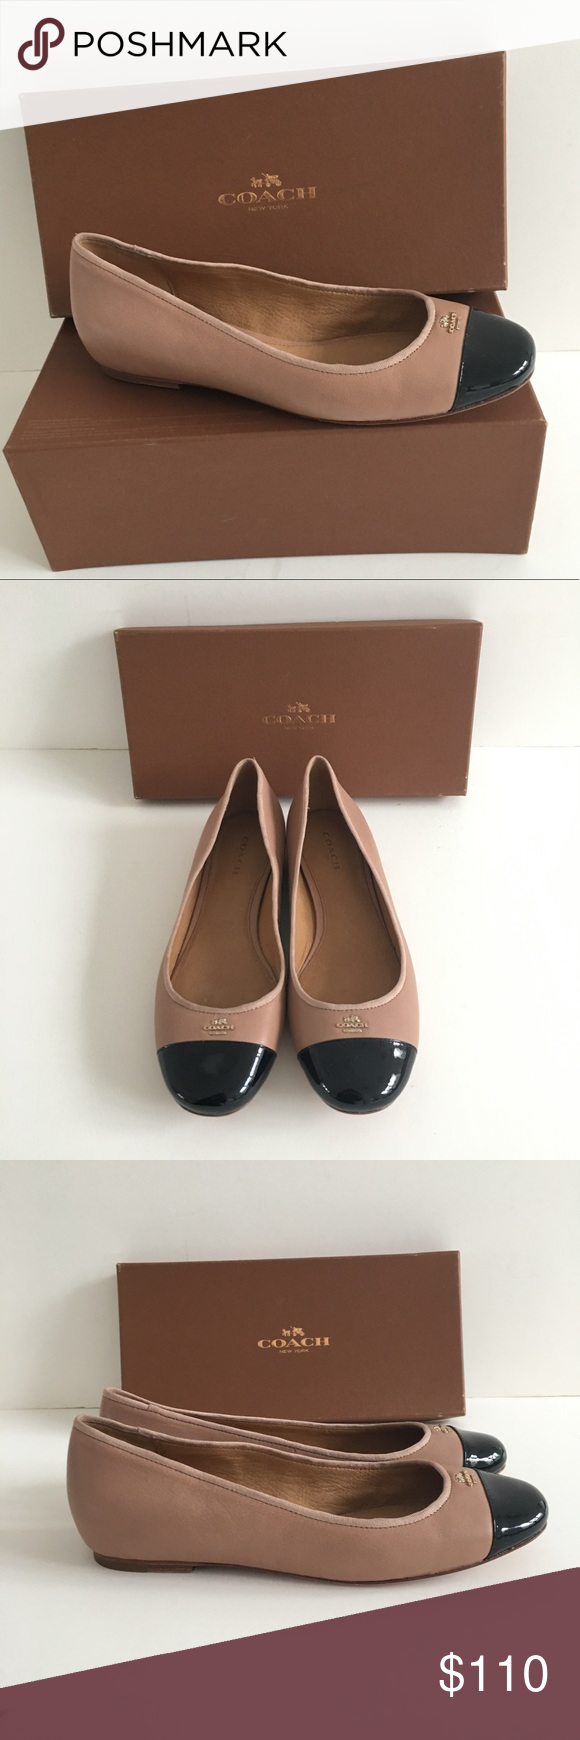 5624e05d8 New Coach Samantha ballet flats Brand new in original box. Made from a soft  nice quality leather in a perfect hue of Nude/ Blush.